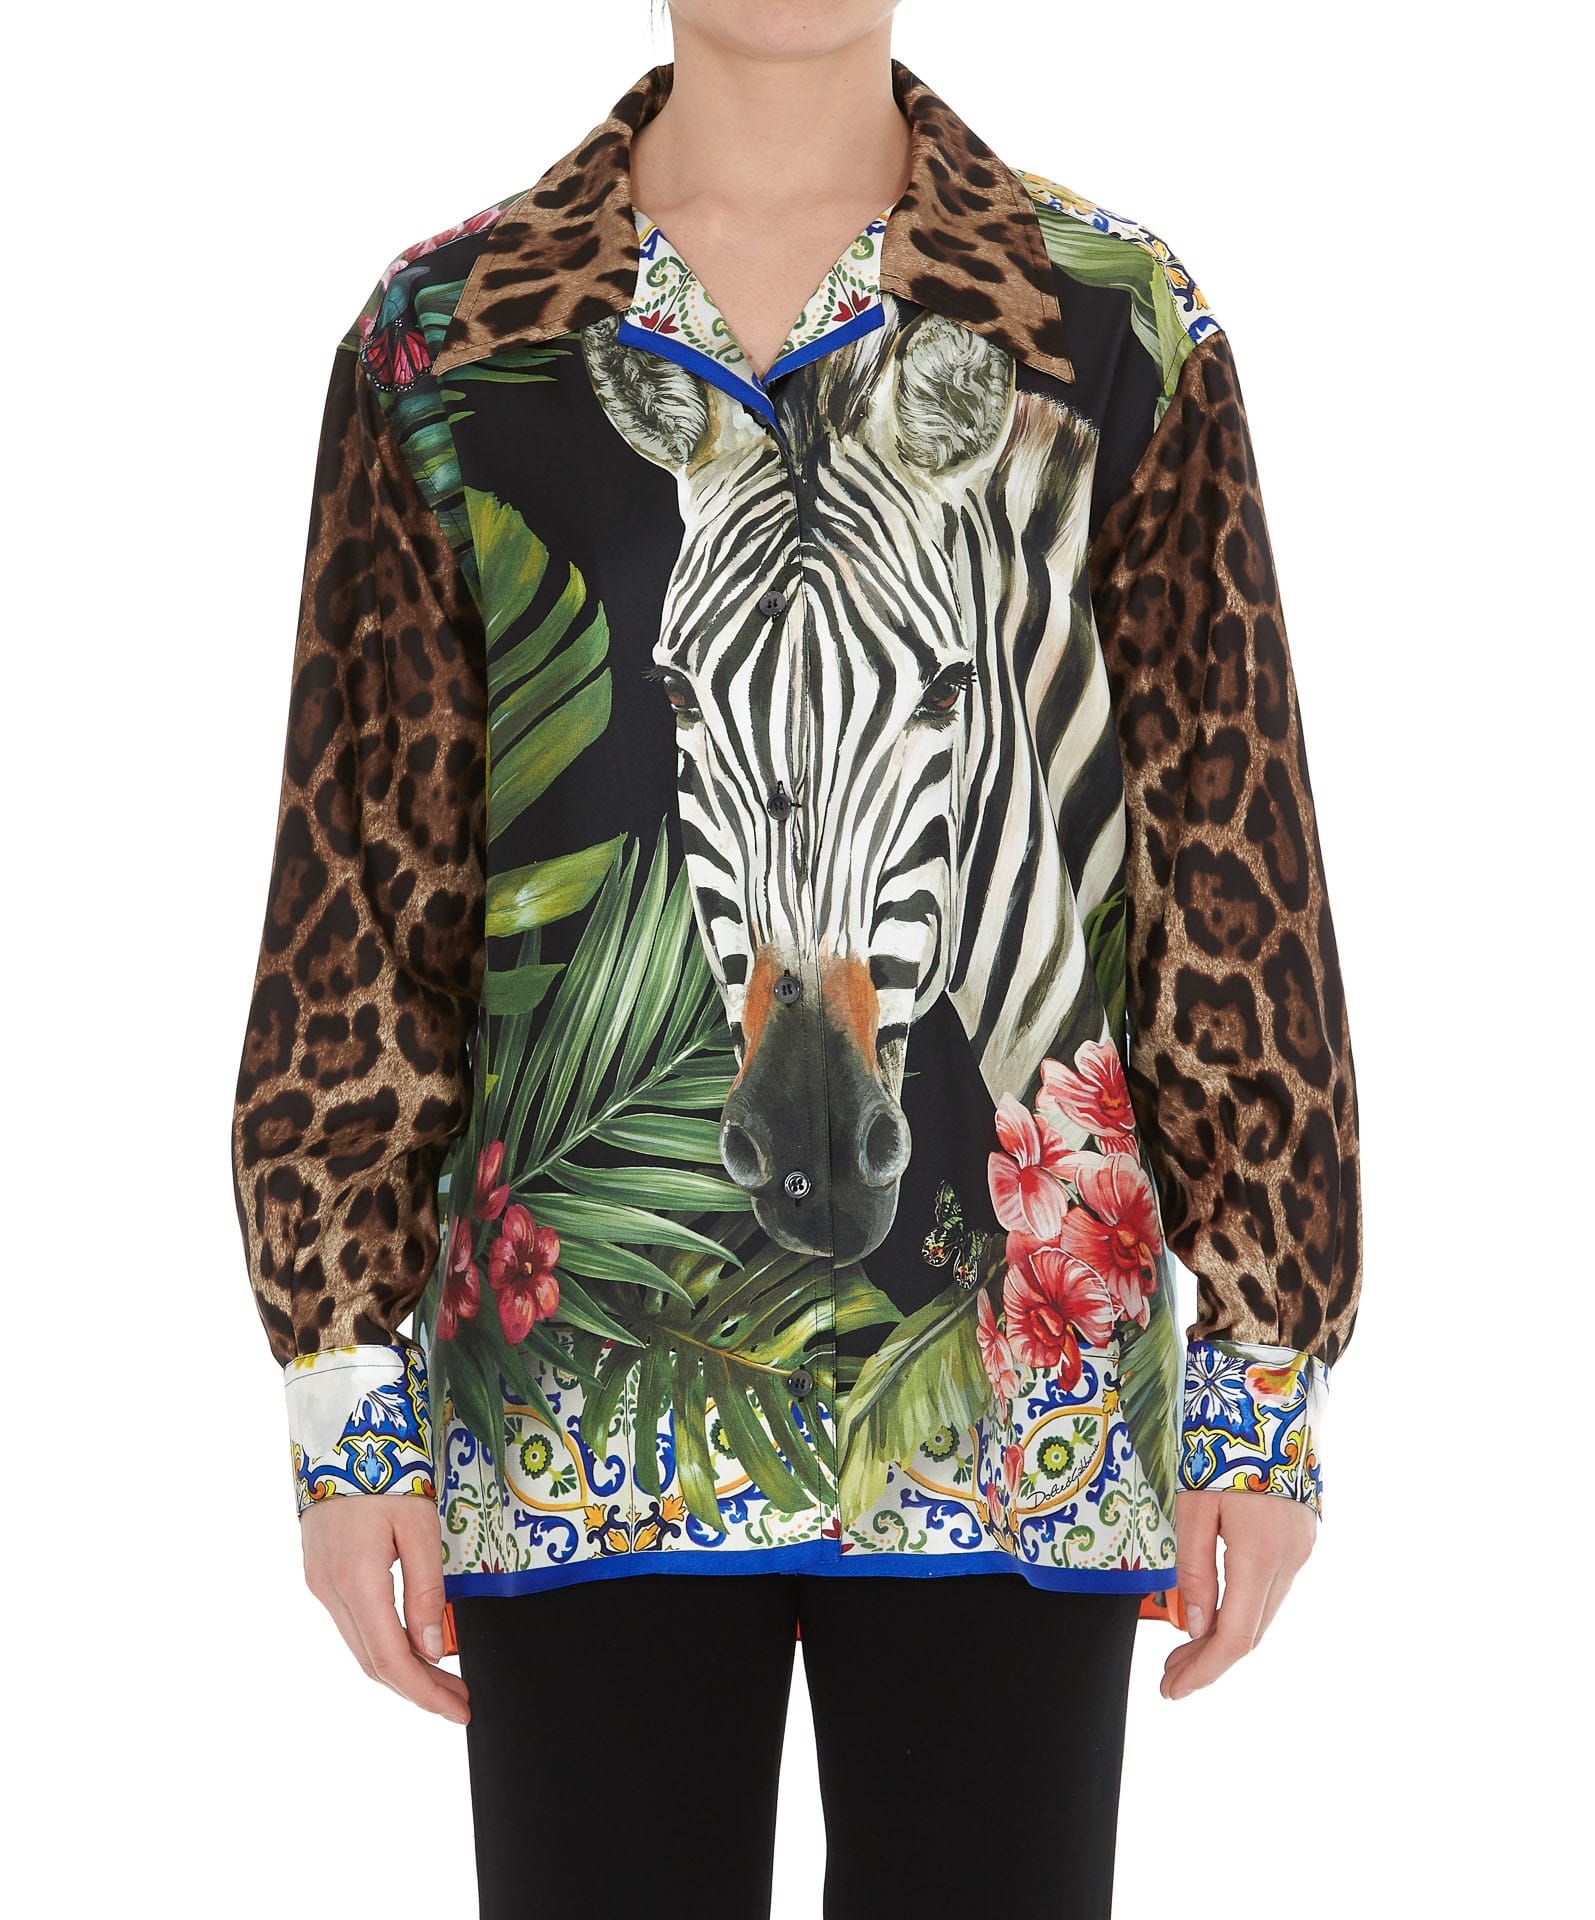 Dolce & Gabbana Tops LEOPARD AND ZEBRA PRINT SHIRT